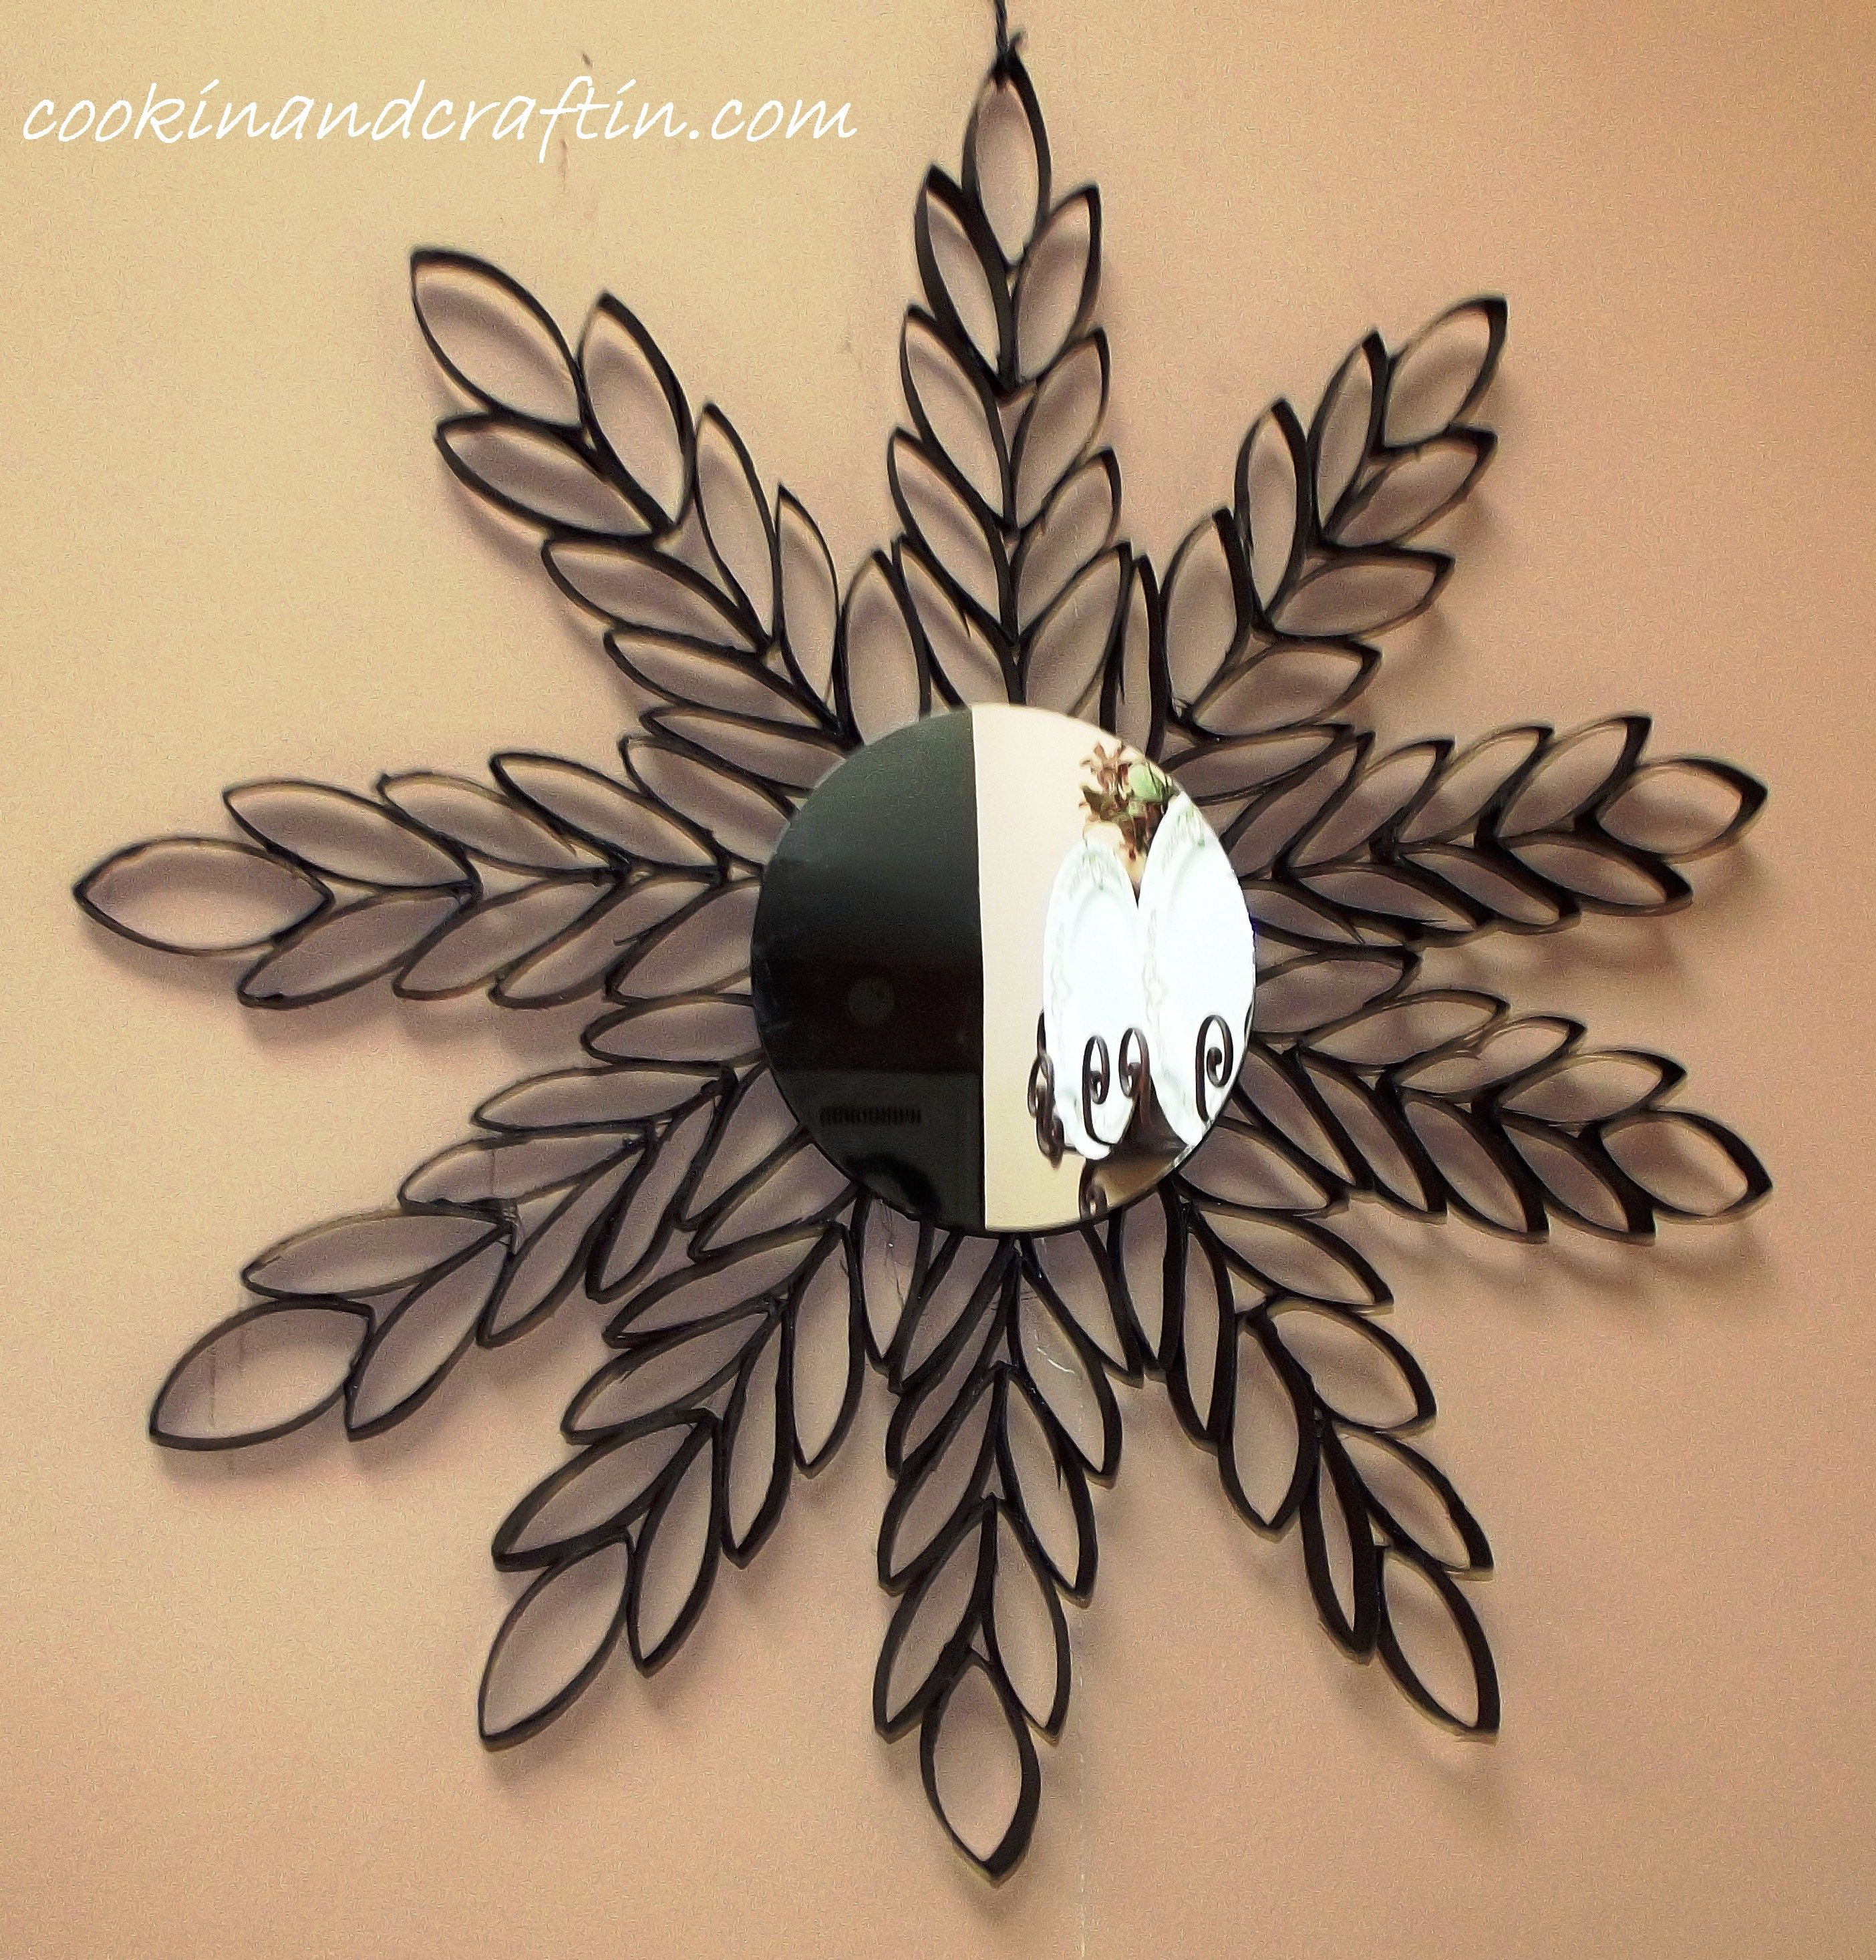 Toilet Paper Roll Art Mirrored Wall Hanging Toilet Paper Roll Art Tp Roll Art